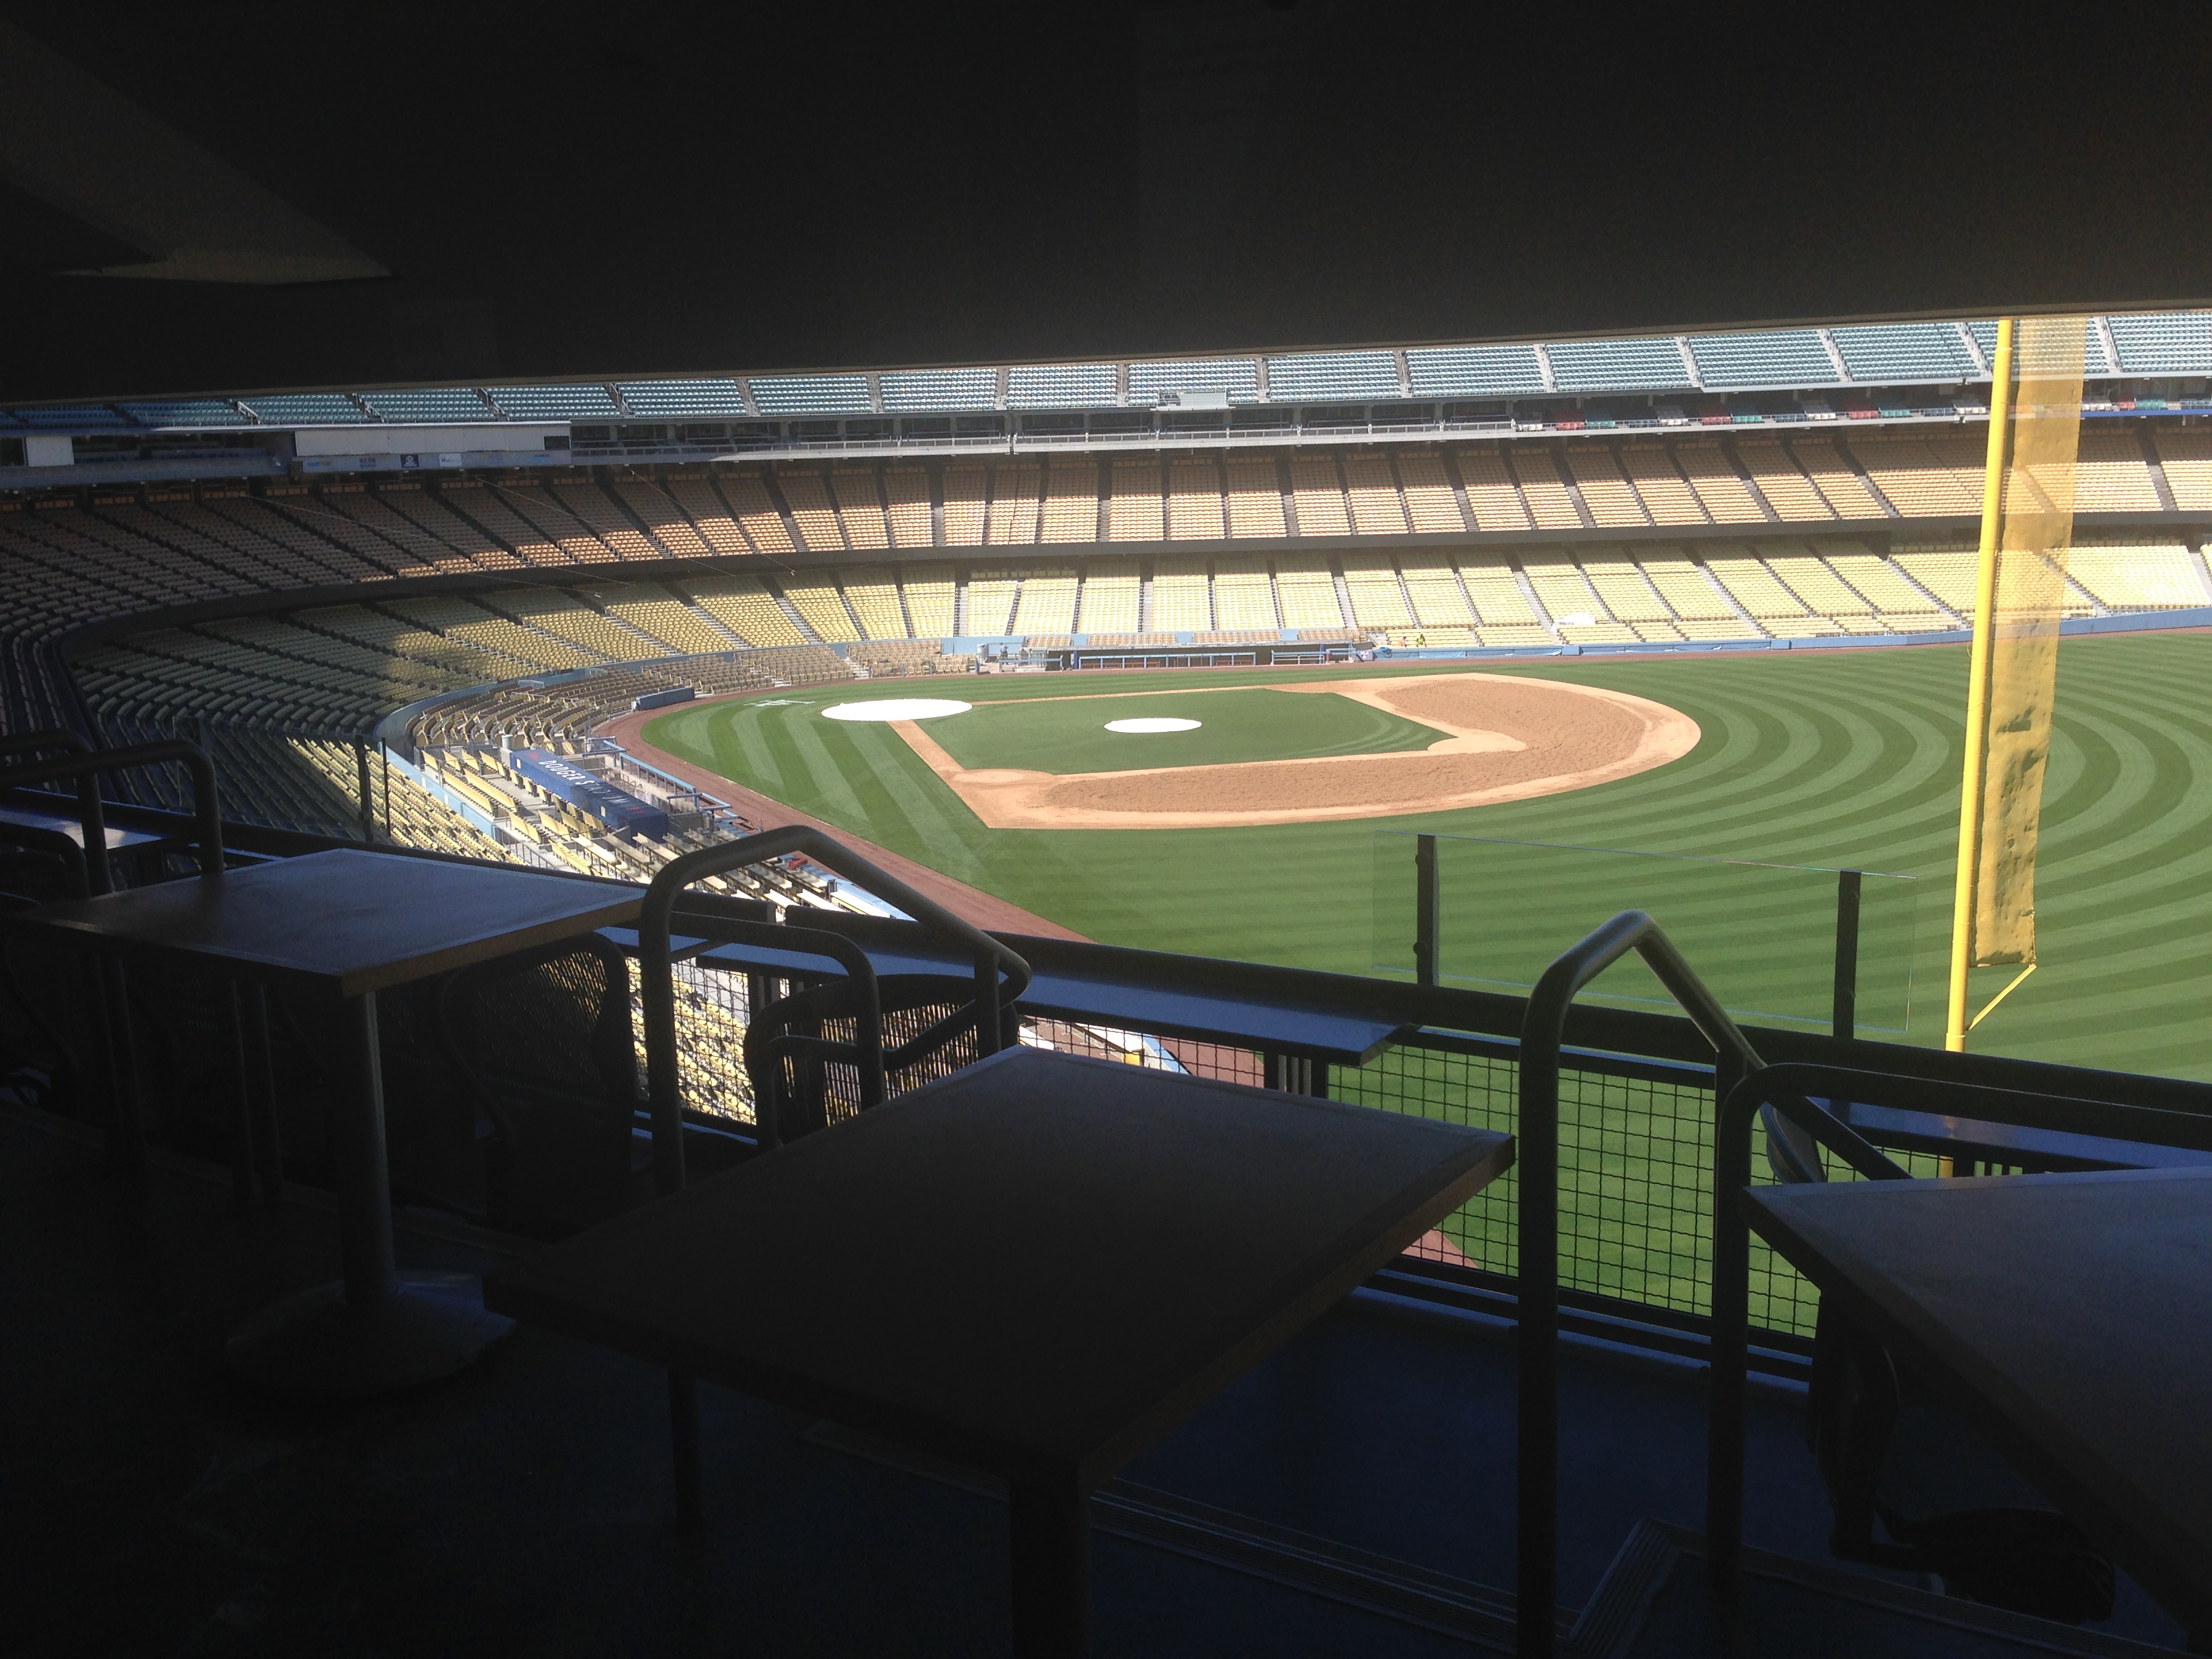 A Dodger Stadium Blog by Tony Varela - Employee Orientation